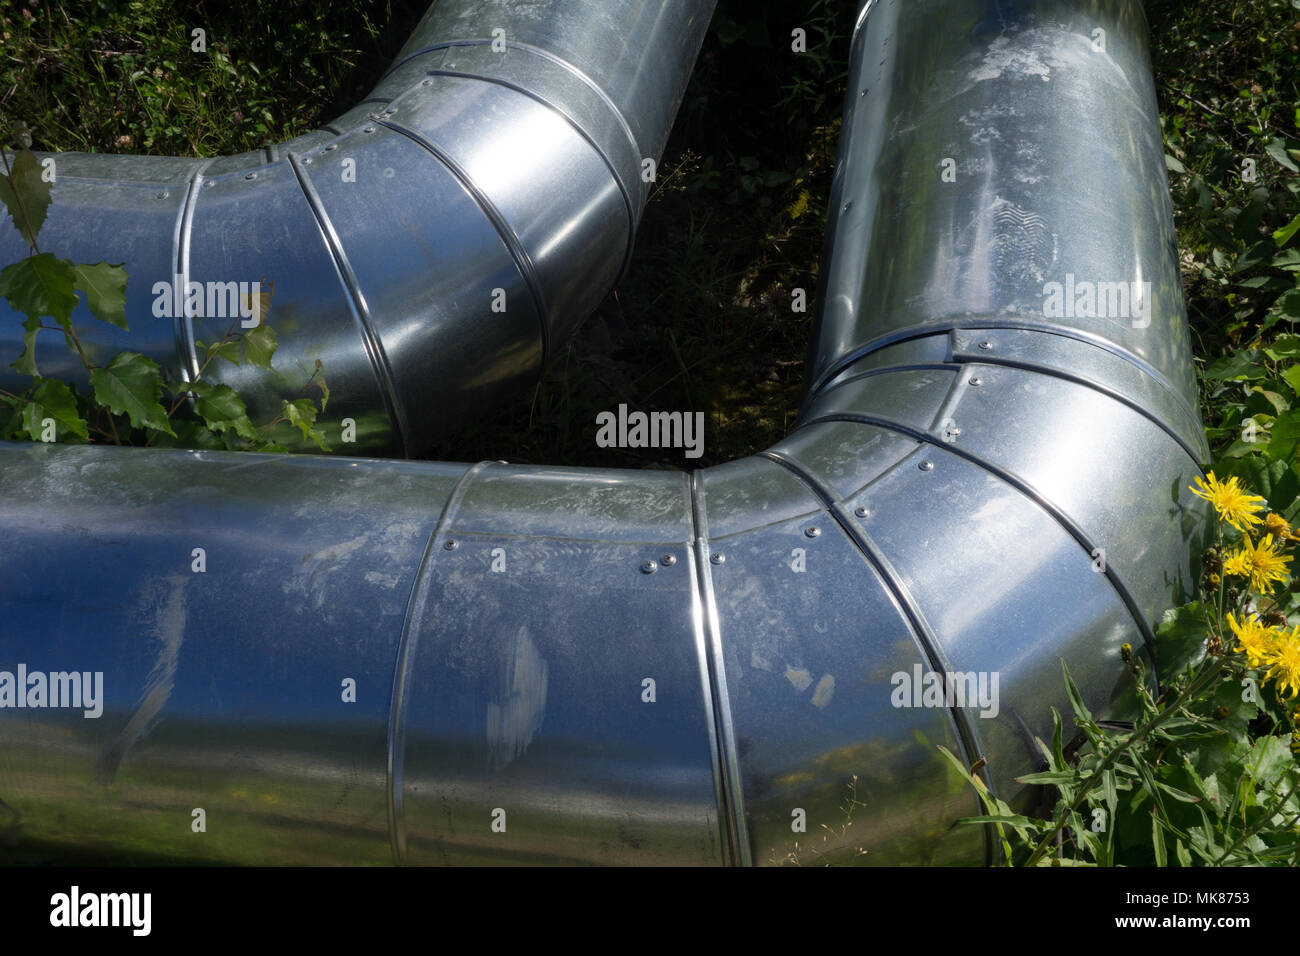 galvanized sheet metal pipe for drainage Zinc drain pipe - Stock Image